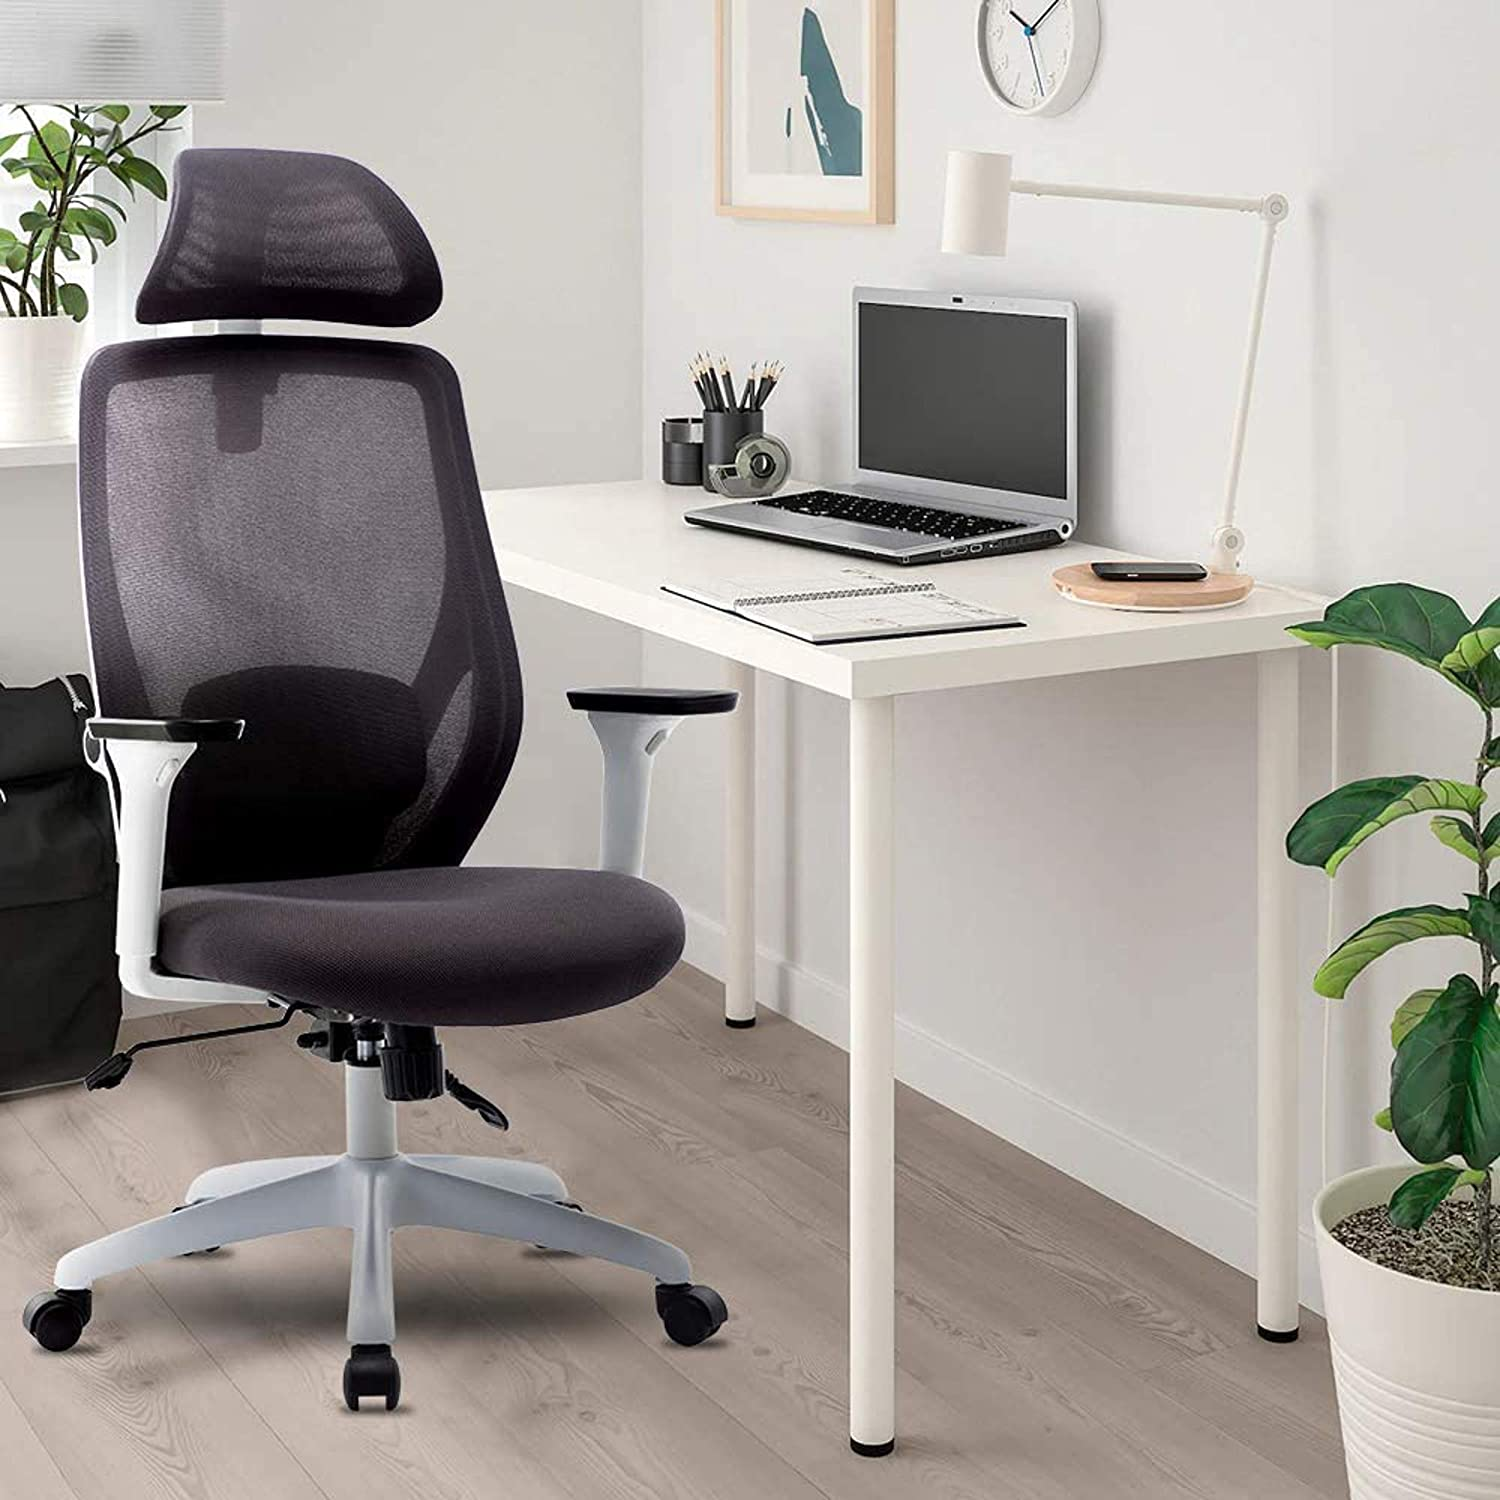 Ergonomic Office Chair,Mesh Chair Heavy Duty Desk Chair,Adjustable Headrest and Armrest,Home Computer Chair with Tilt Function and Position Lock,Swivel Computer Task Chair,High-Back(White)